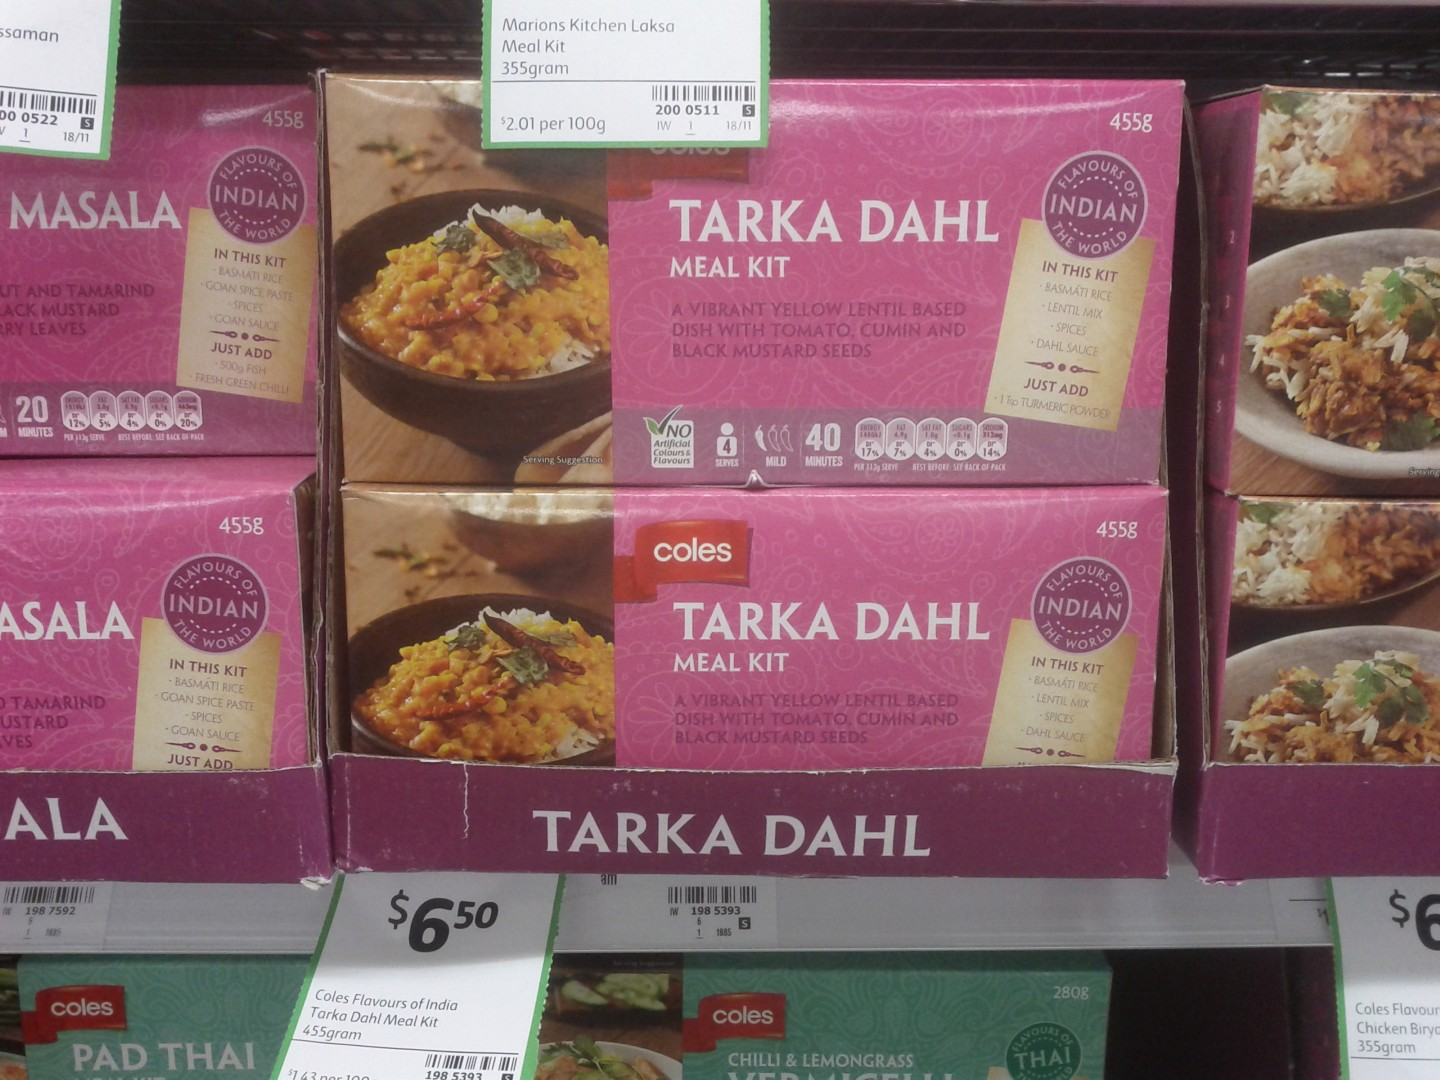 Coles 455g Tarka Dahl Meal Kit